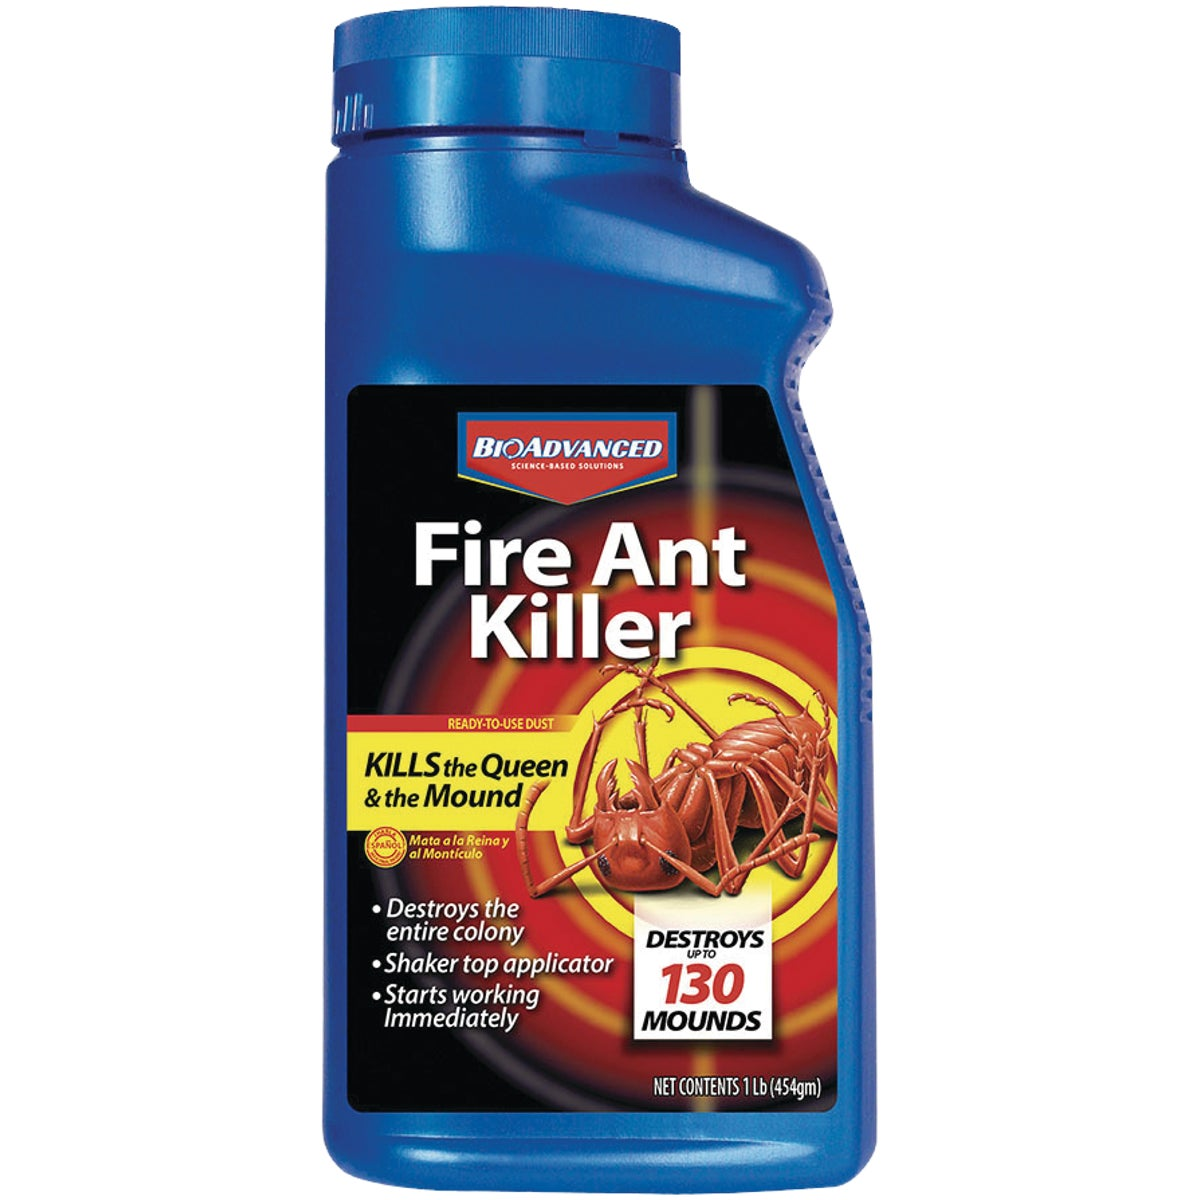 16OZ FIRE ANT KILLER - 502832B by Bayer Advanced Llc